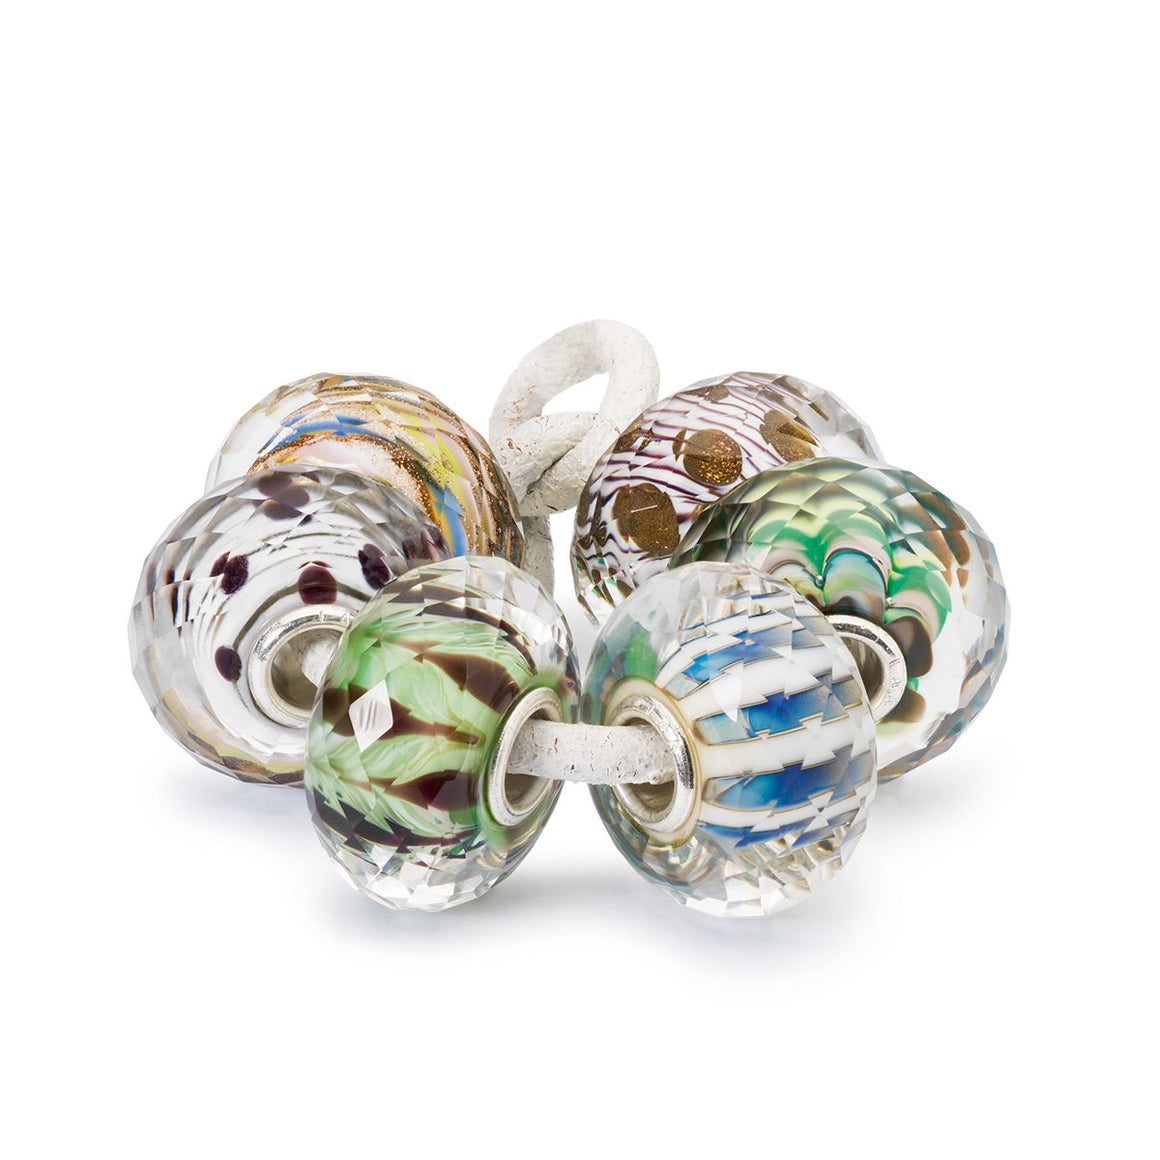 Trollbeads New Adventures Glass Kit